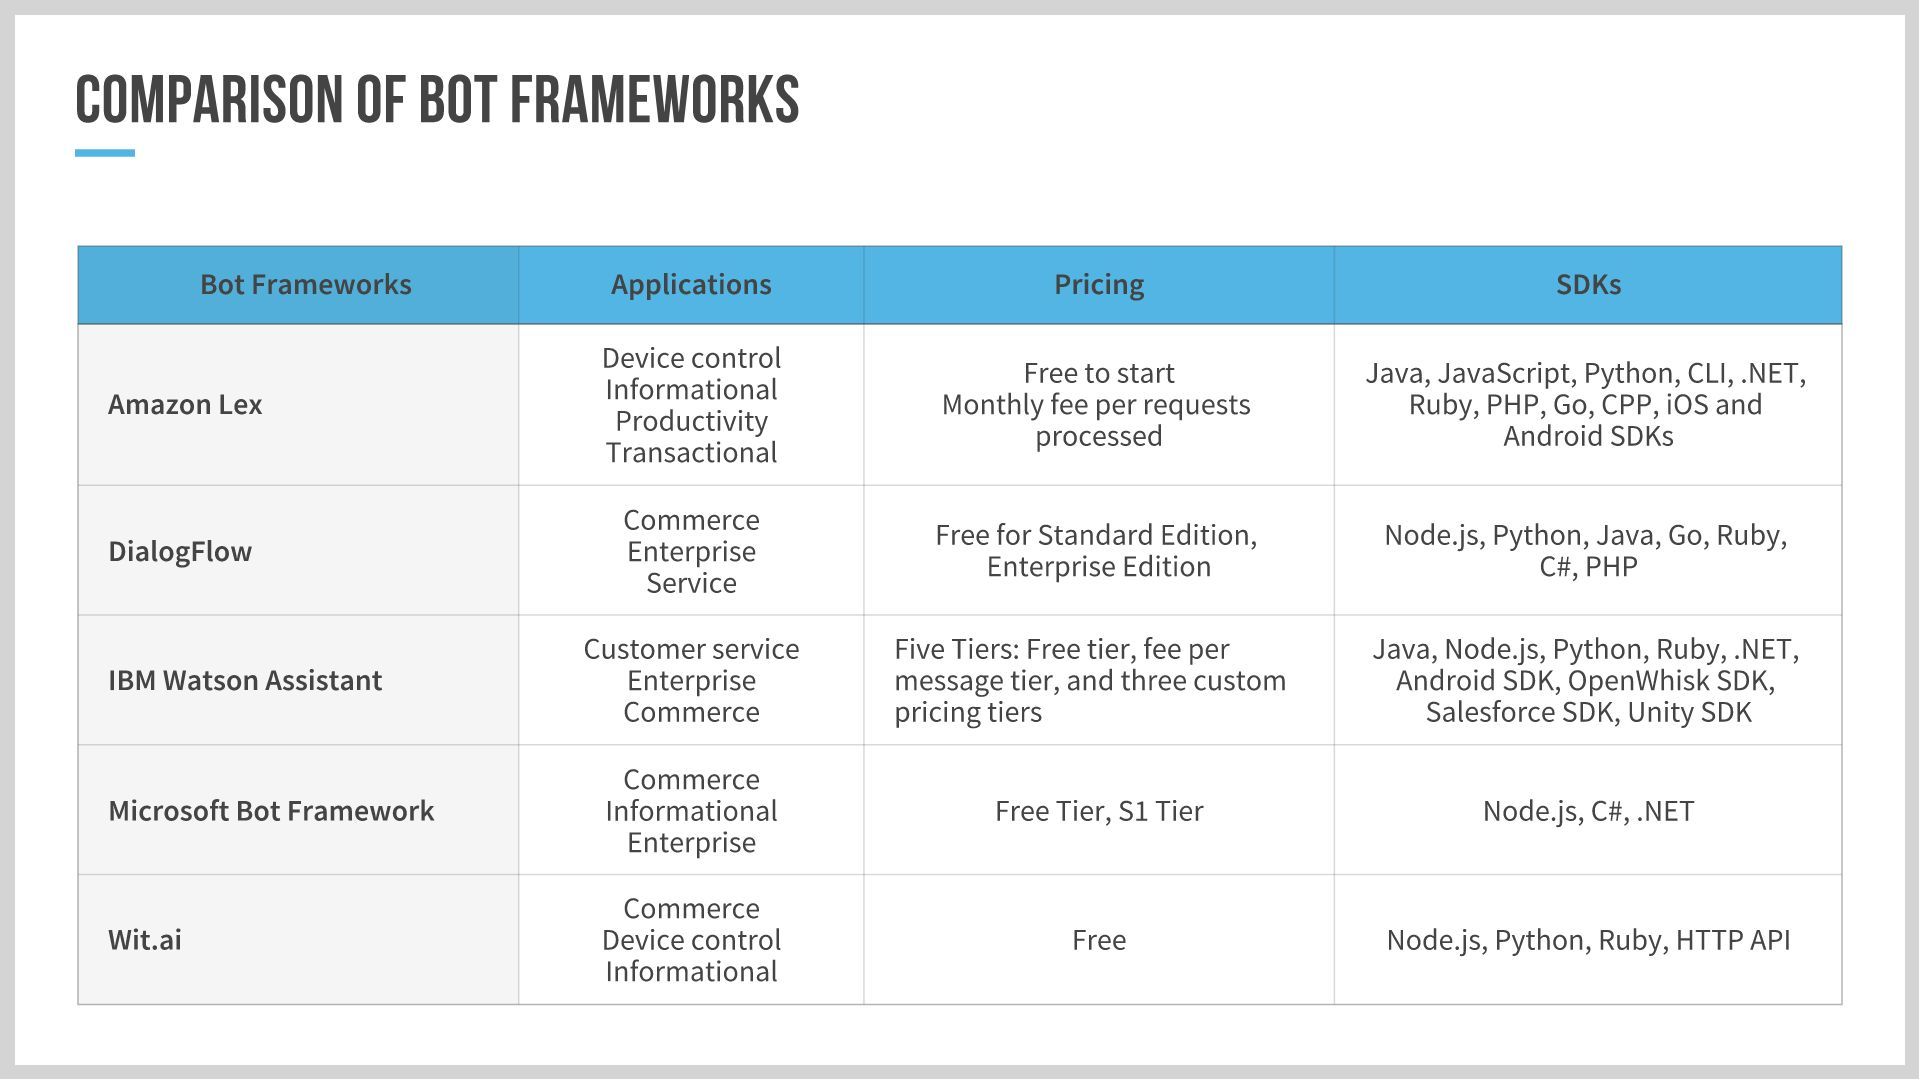 Table showing a comparison of different bot frameworks.